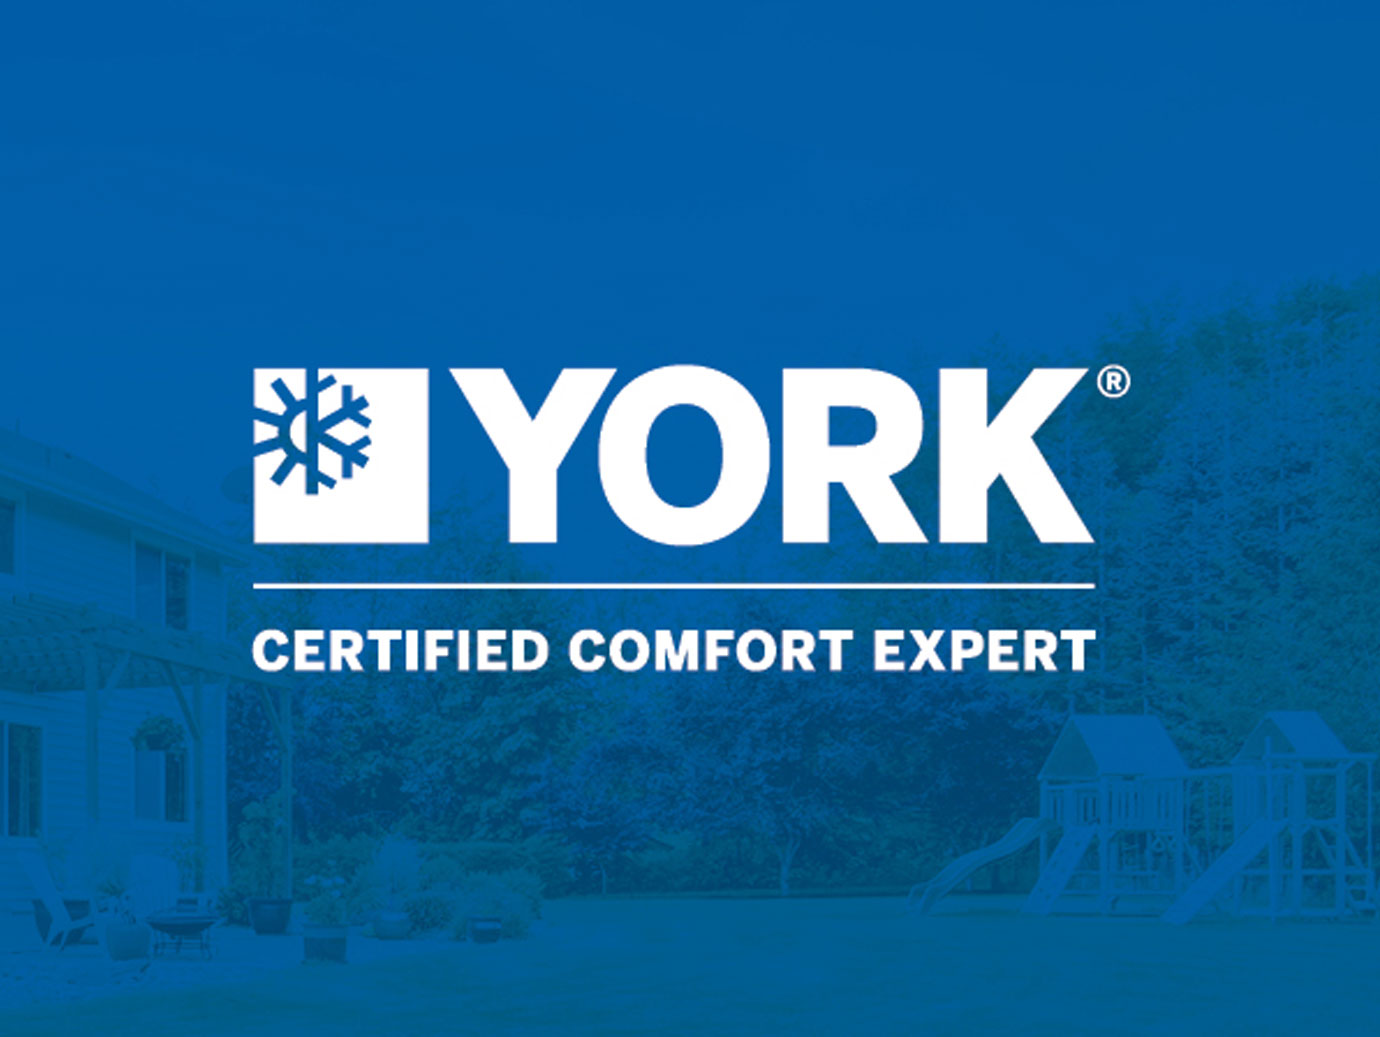 YORK® CCE Endorsement